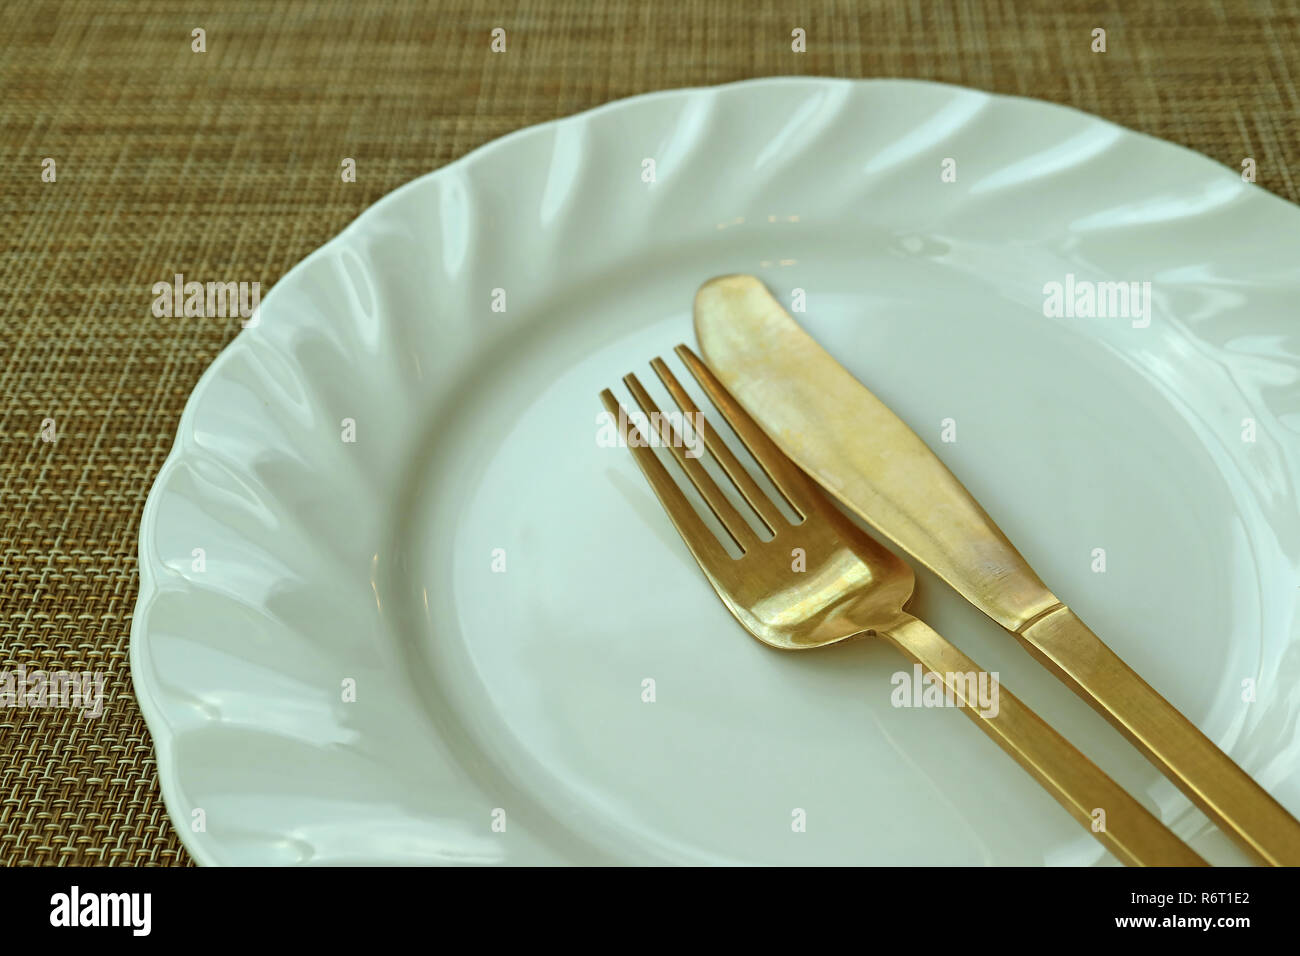 Closed Up White Ceramic Plate and Brass Cutlery on Beige Luncheon Mat - Stock Image